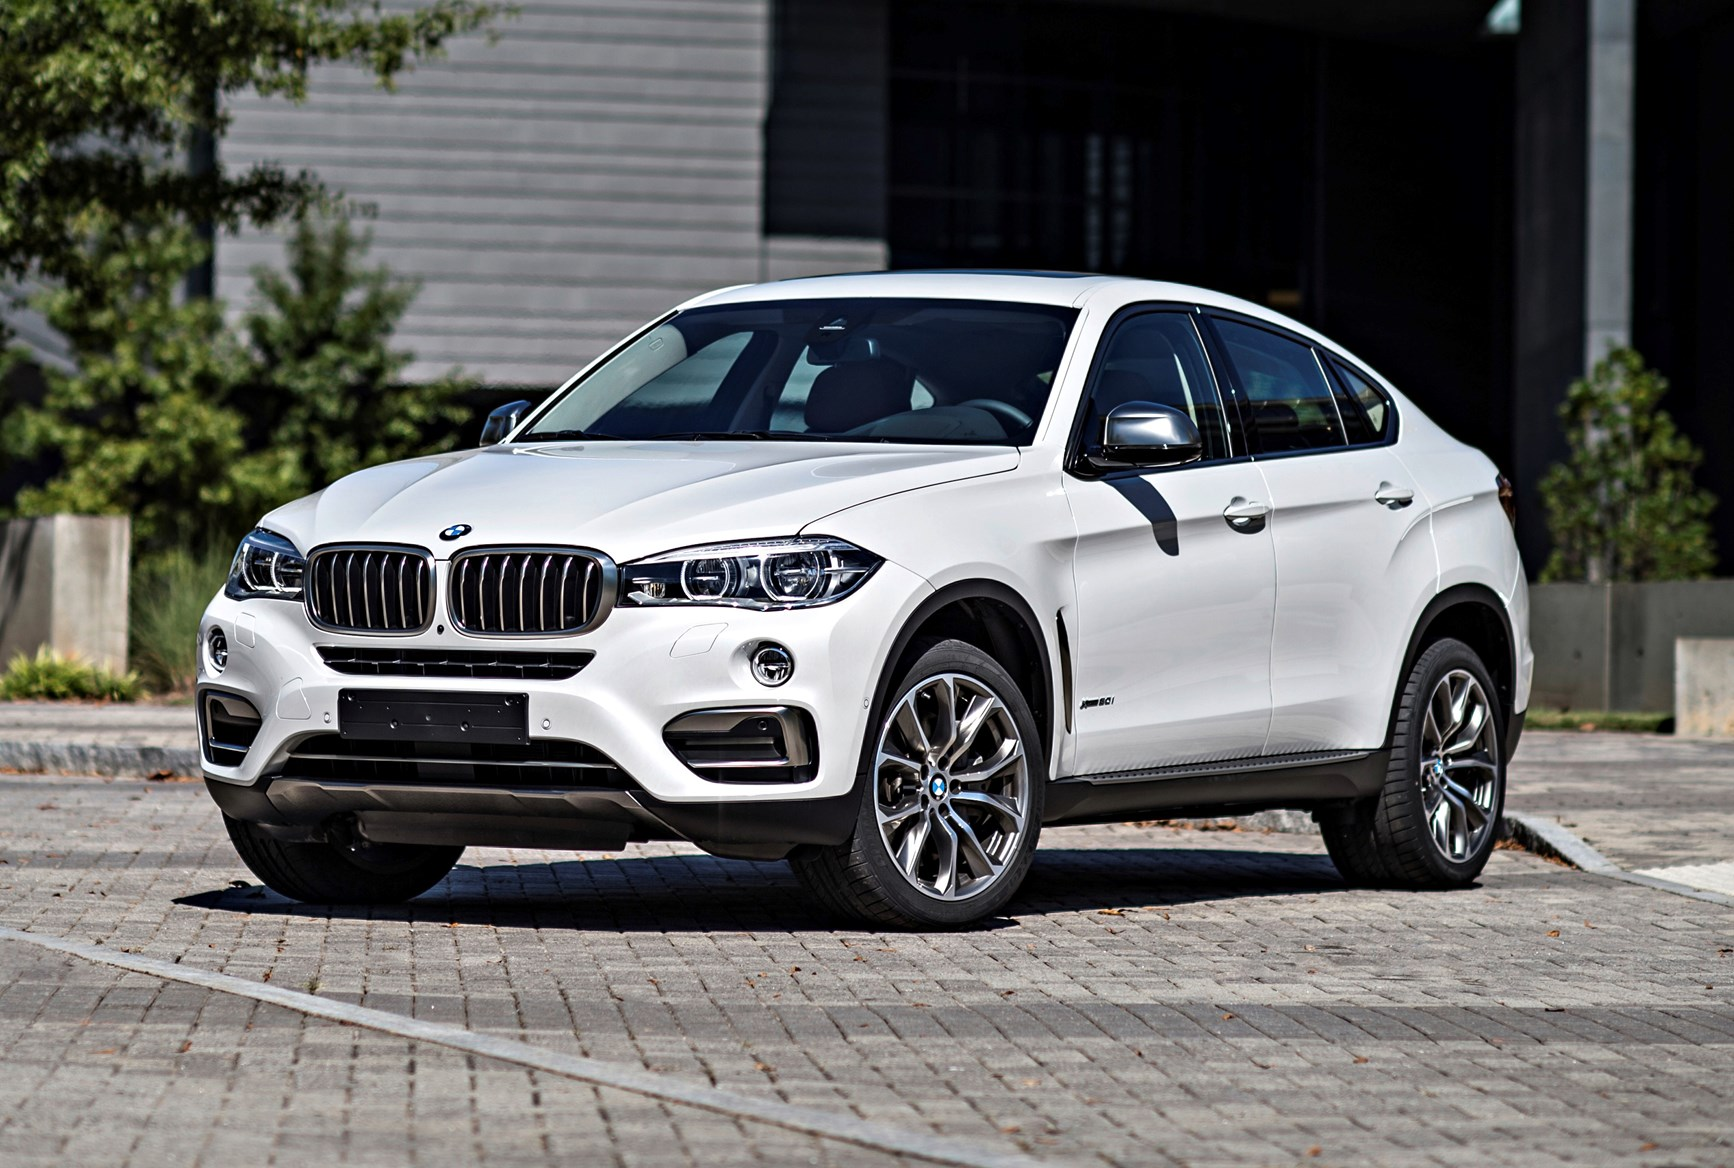 Bmw X6 Used For Sale Uk Used Blue Bmw X6 For Sale West